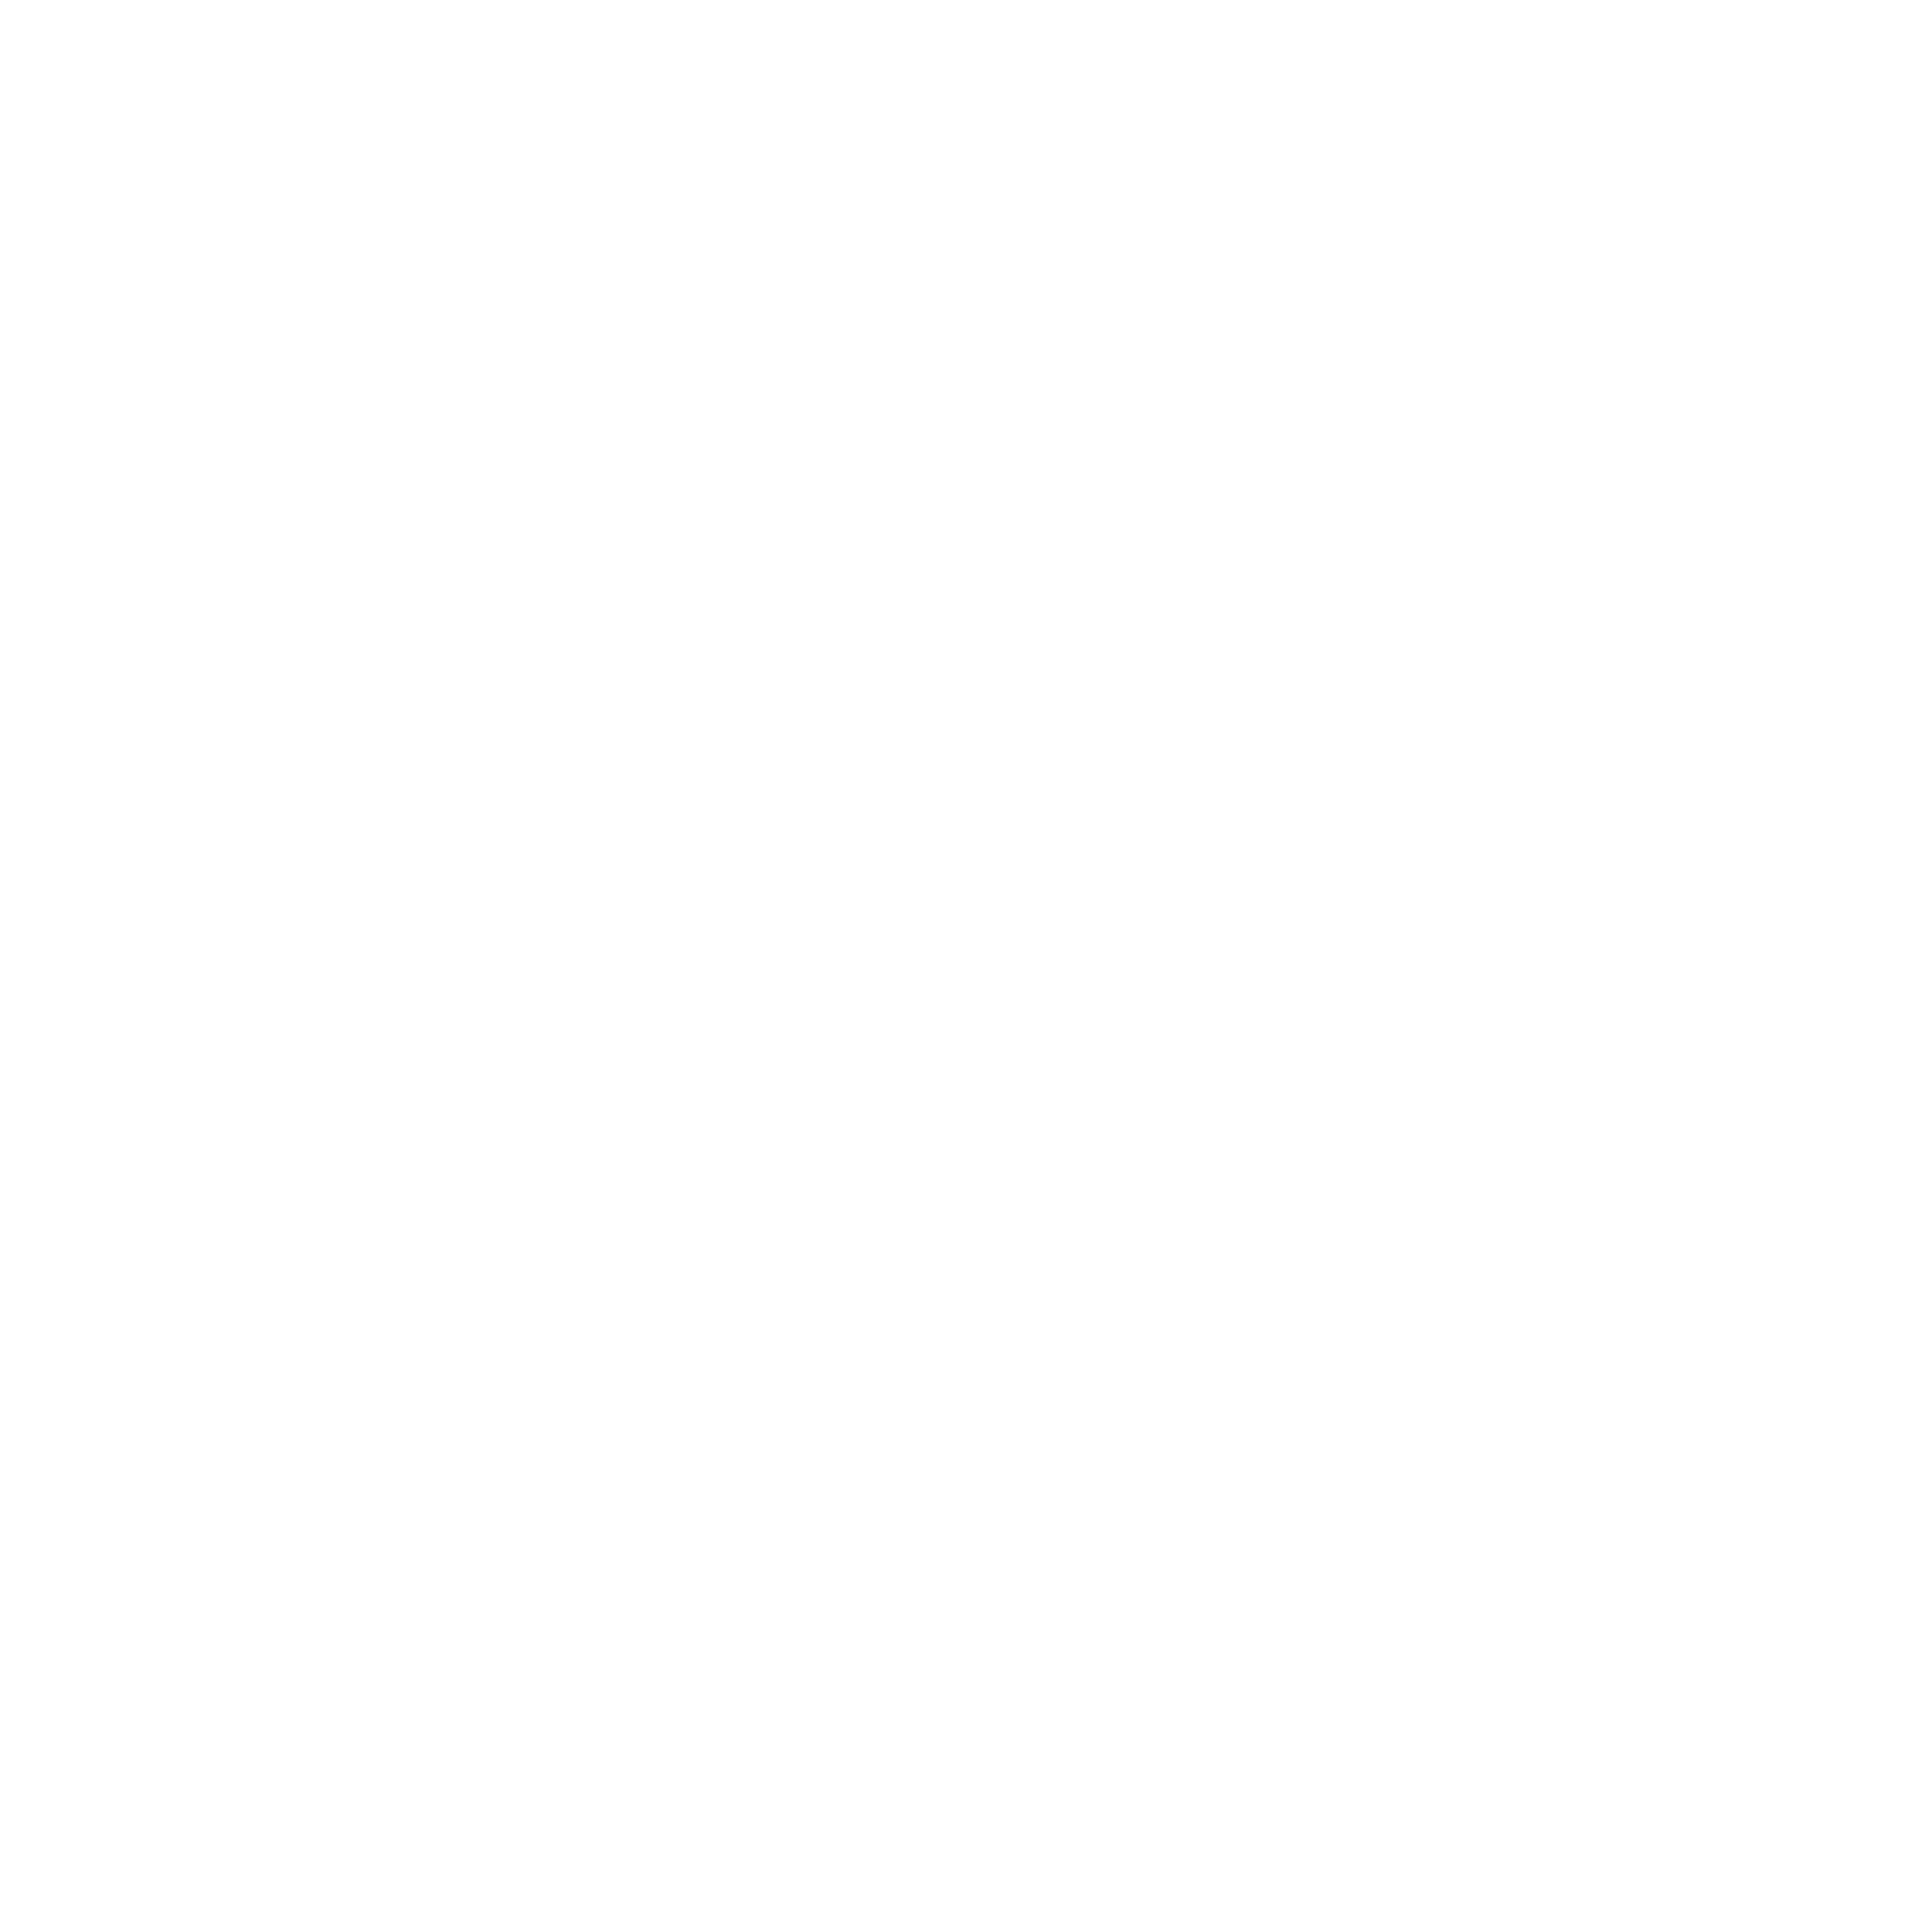 BalticSeaberry